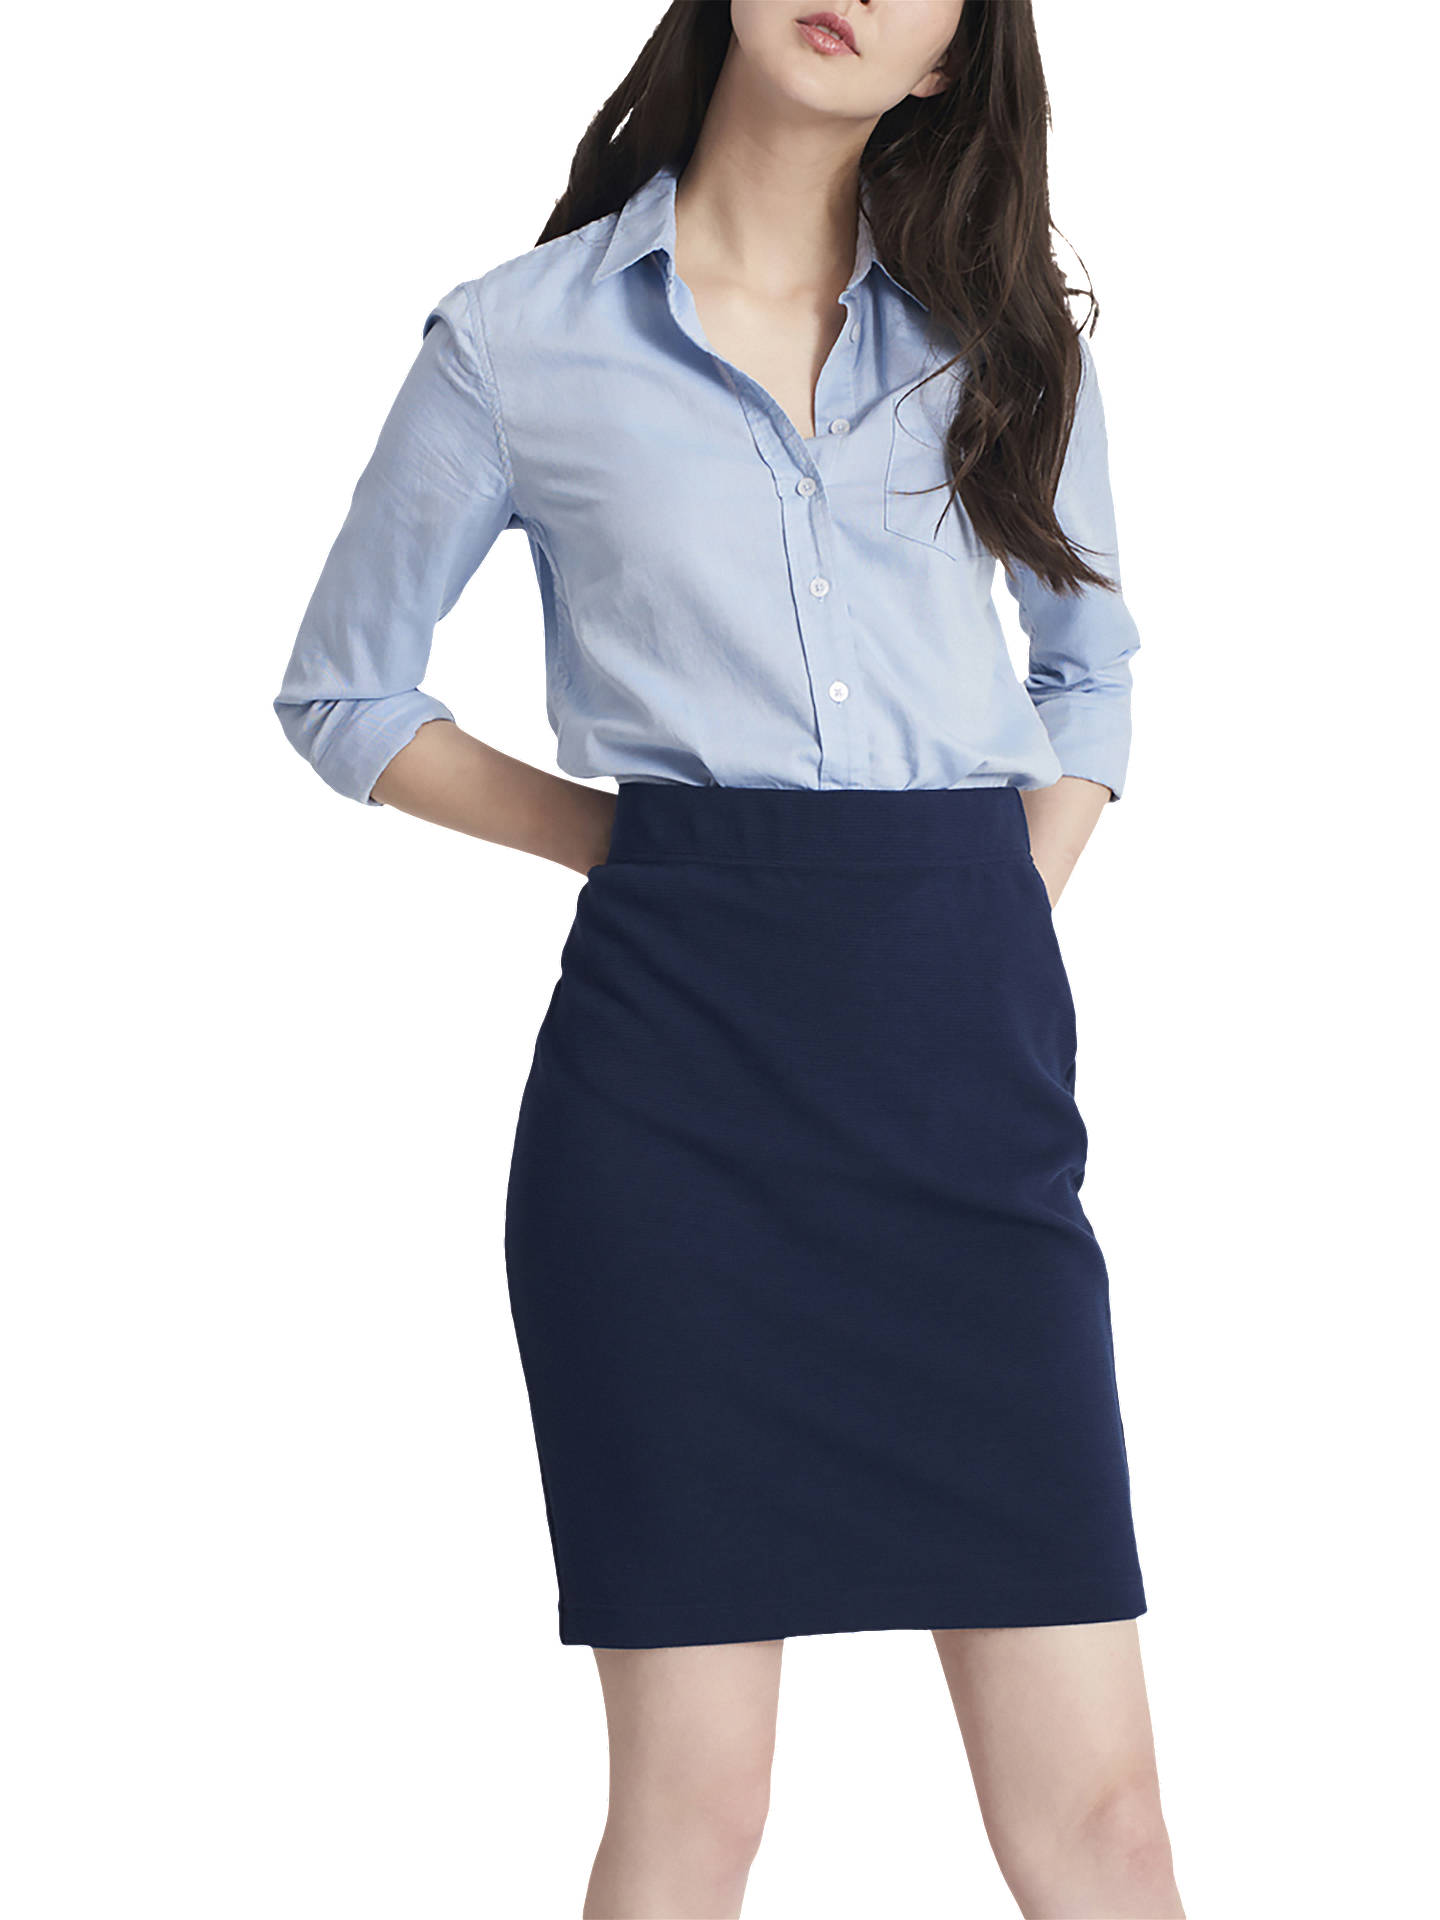 e7b007e276 Buy Joules Penelope Jersey Pencil Skirt, French Navy, 12 Online at  johnlewis.com ...